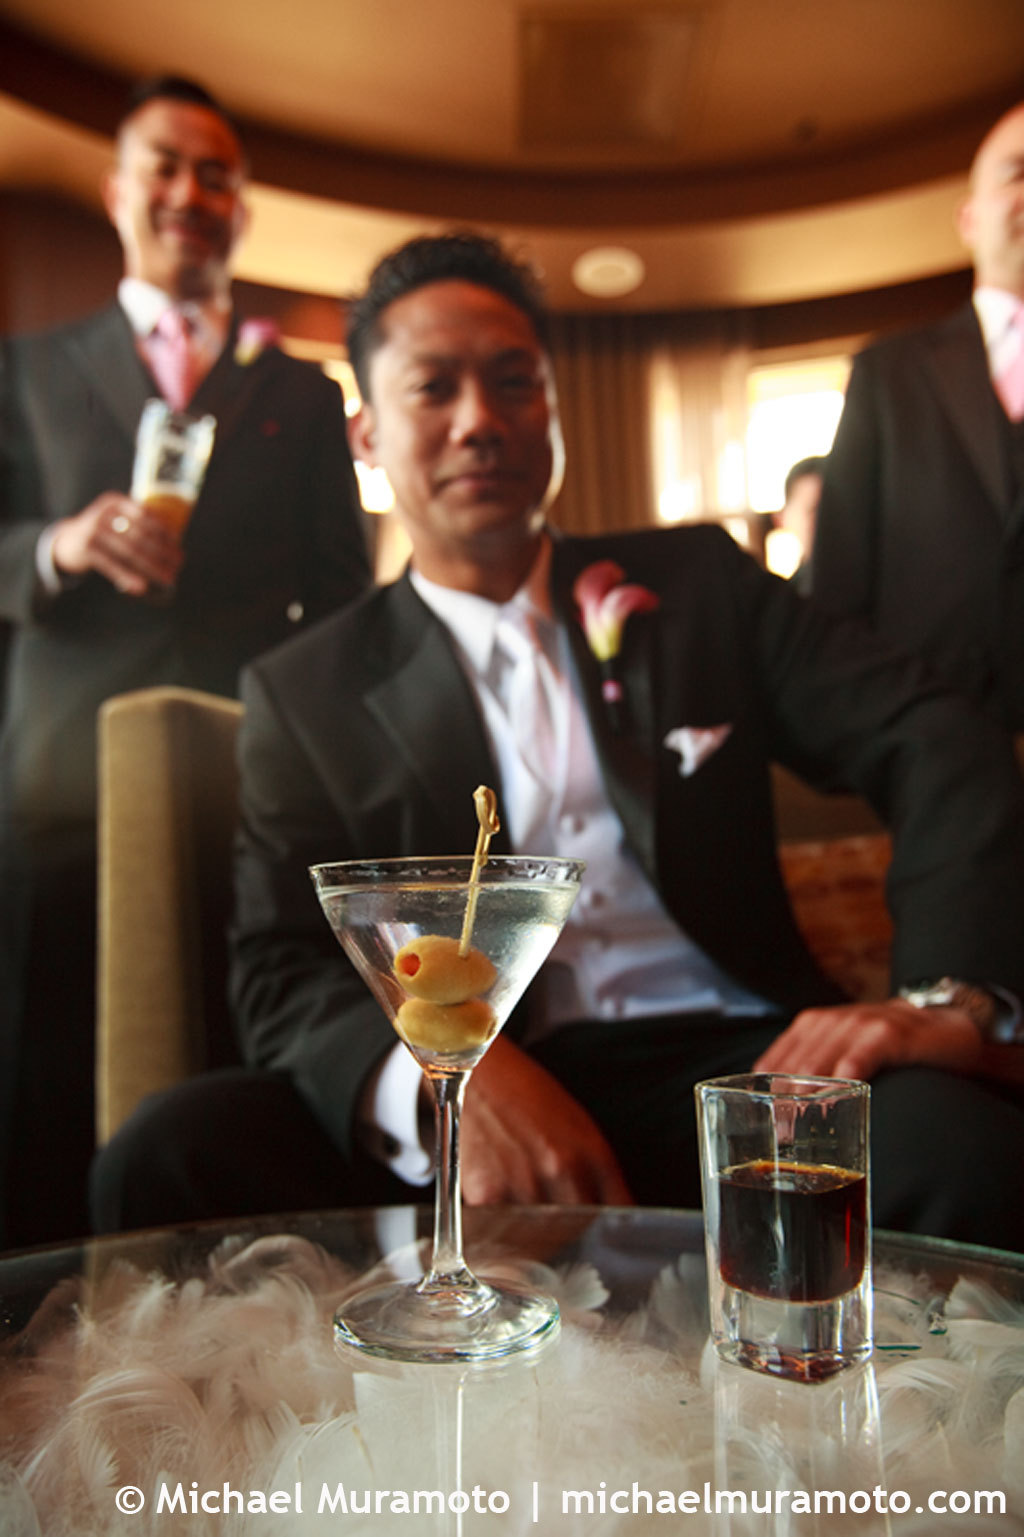 Groom, Drink, Bar, San francisco, Michael muramoto photography, Bar americano